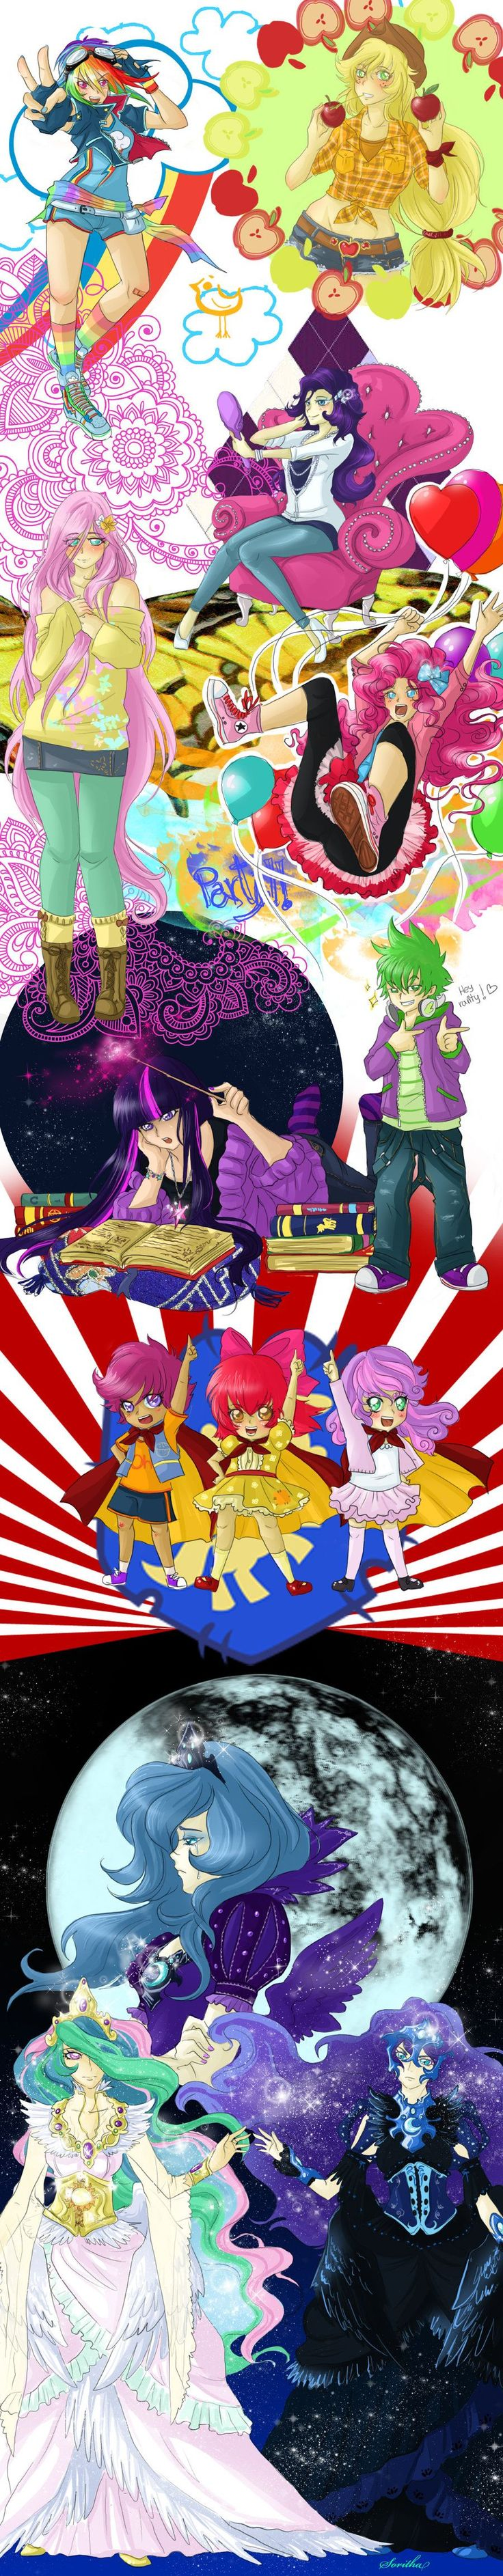 MLPFIM characters by Sparkly-Monster on deviantART